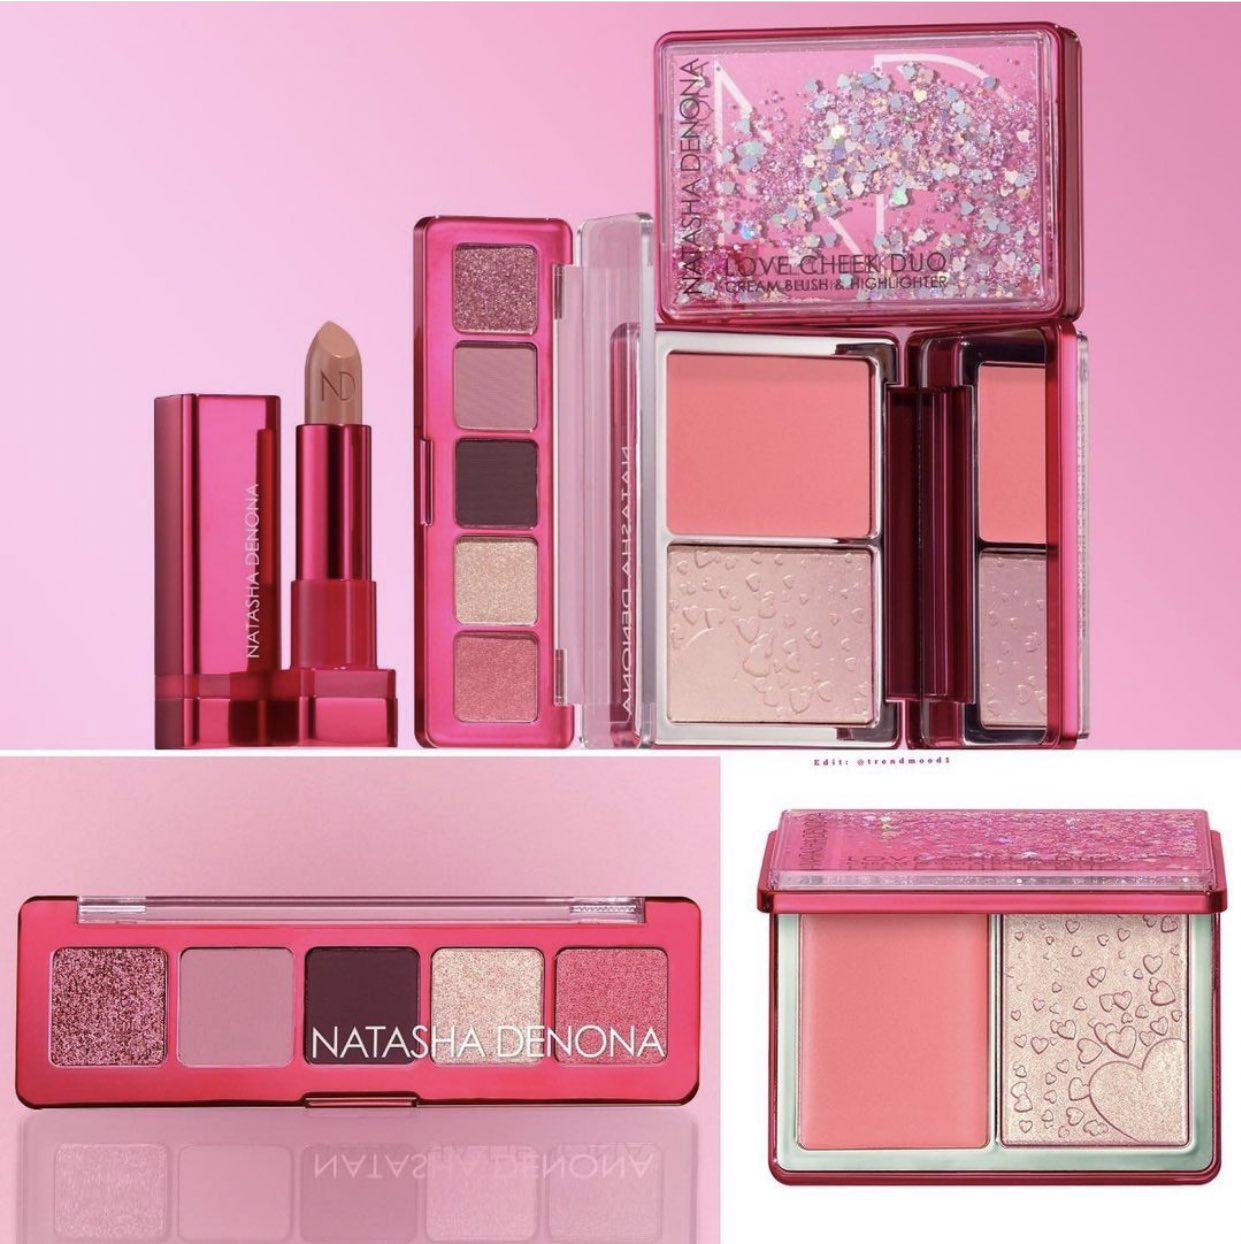 1 10 - Natasha Denona Love Mini Collection 2021